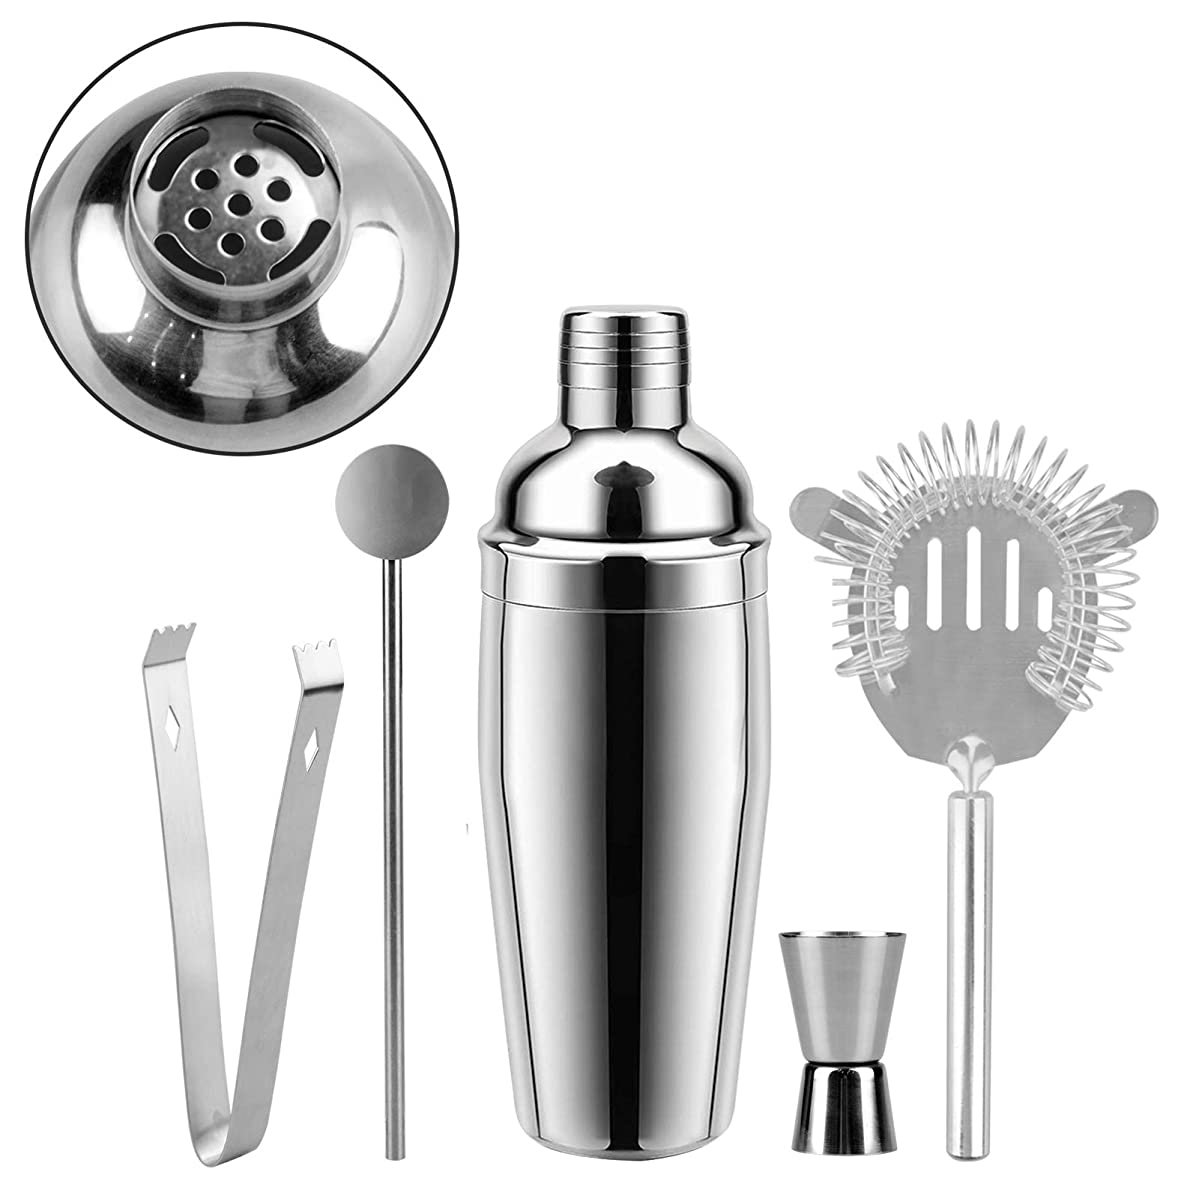 Cocktail Shaker 26 Ounce Martini Shakers Professional Stainless Steel Bartender Barware Tools Kit with Built-in Strainer Drink Recipes by Abool